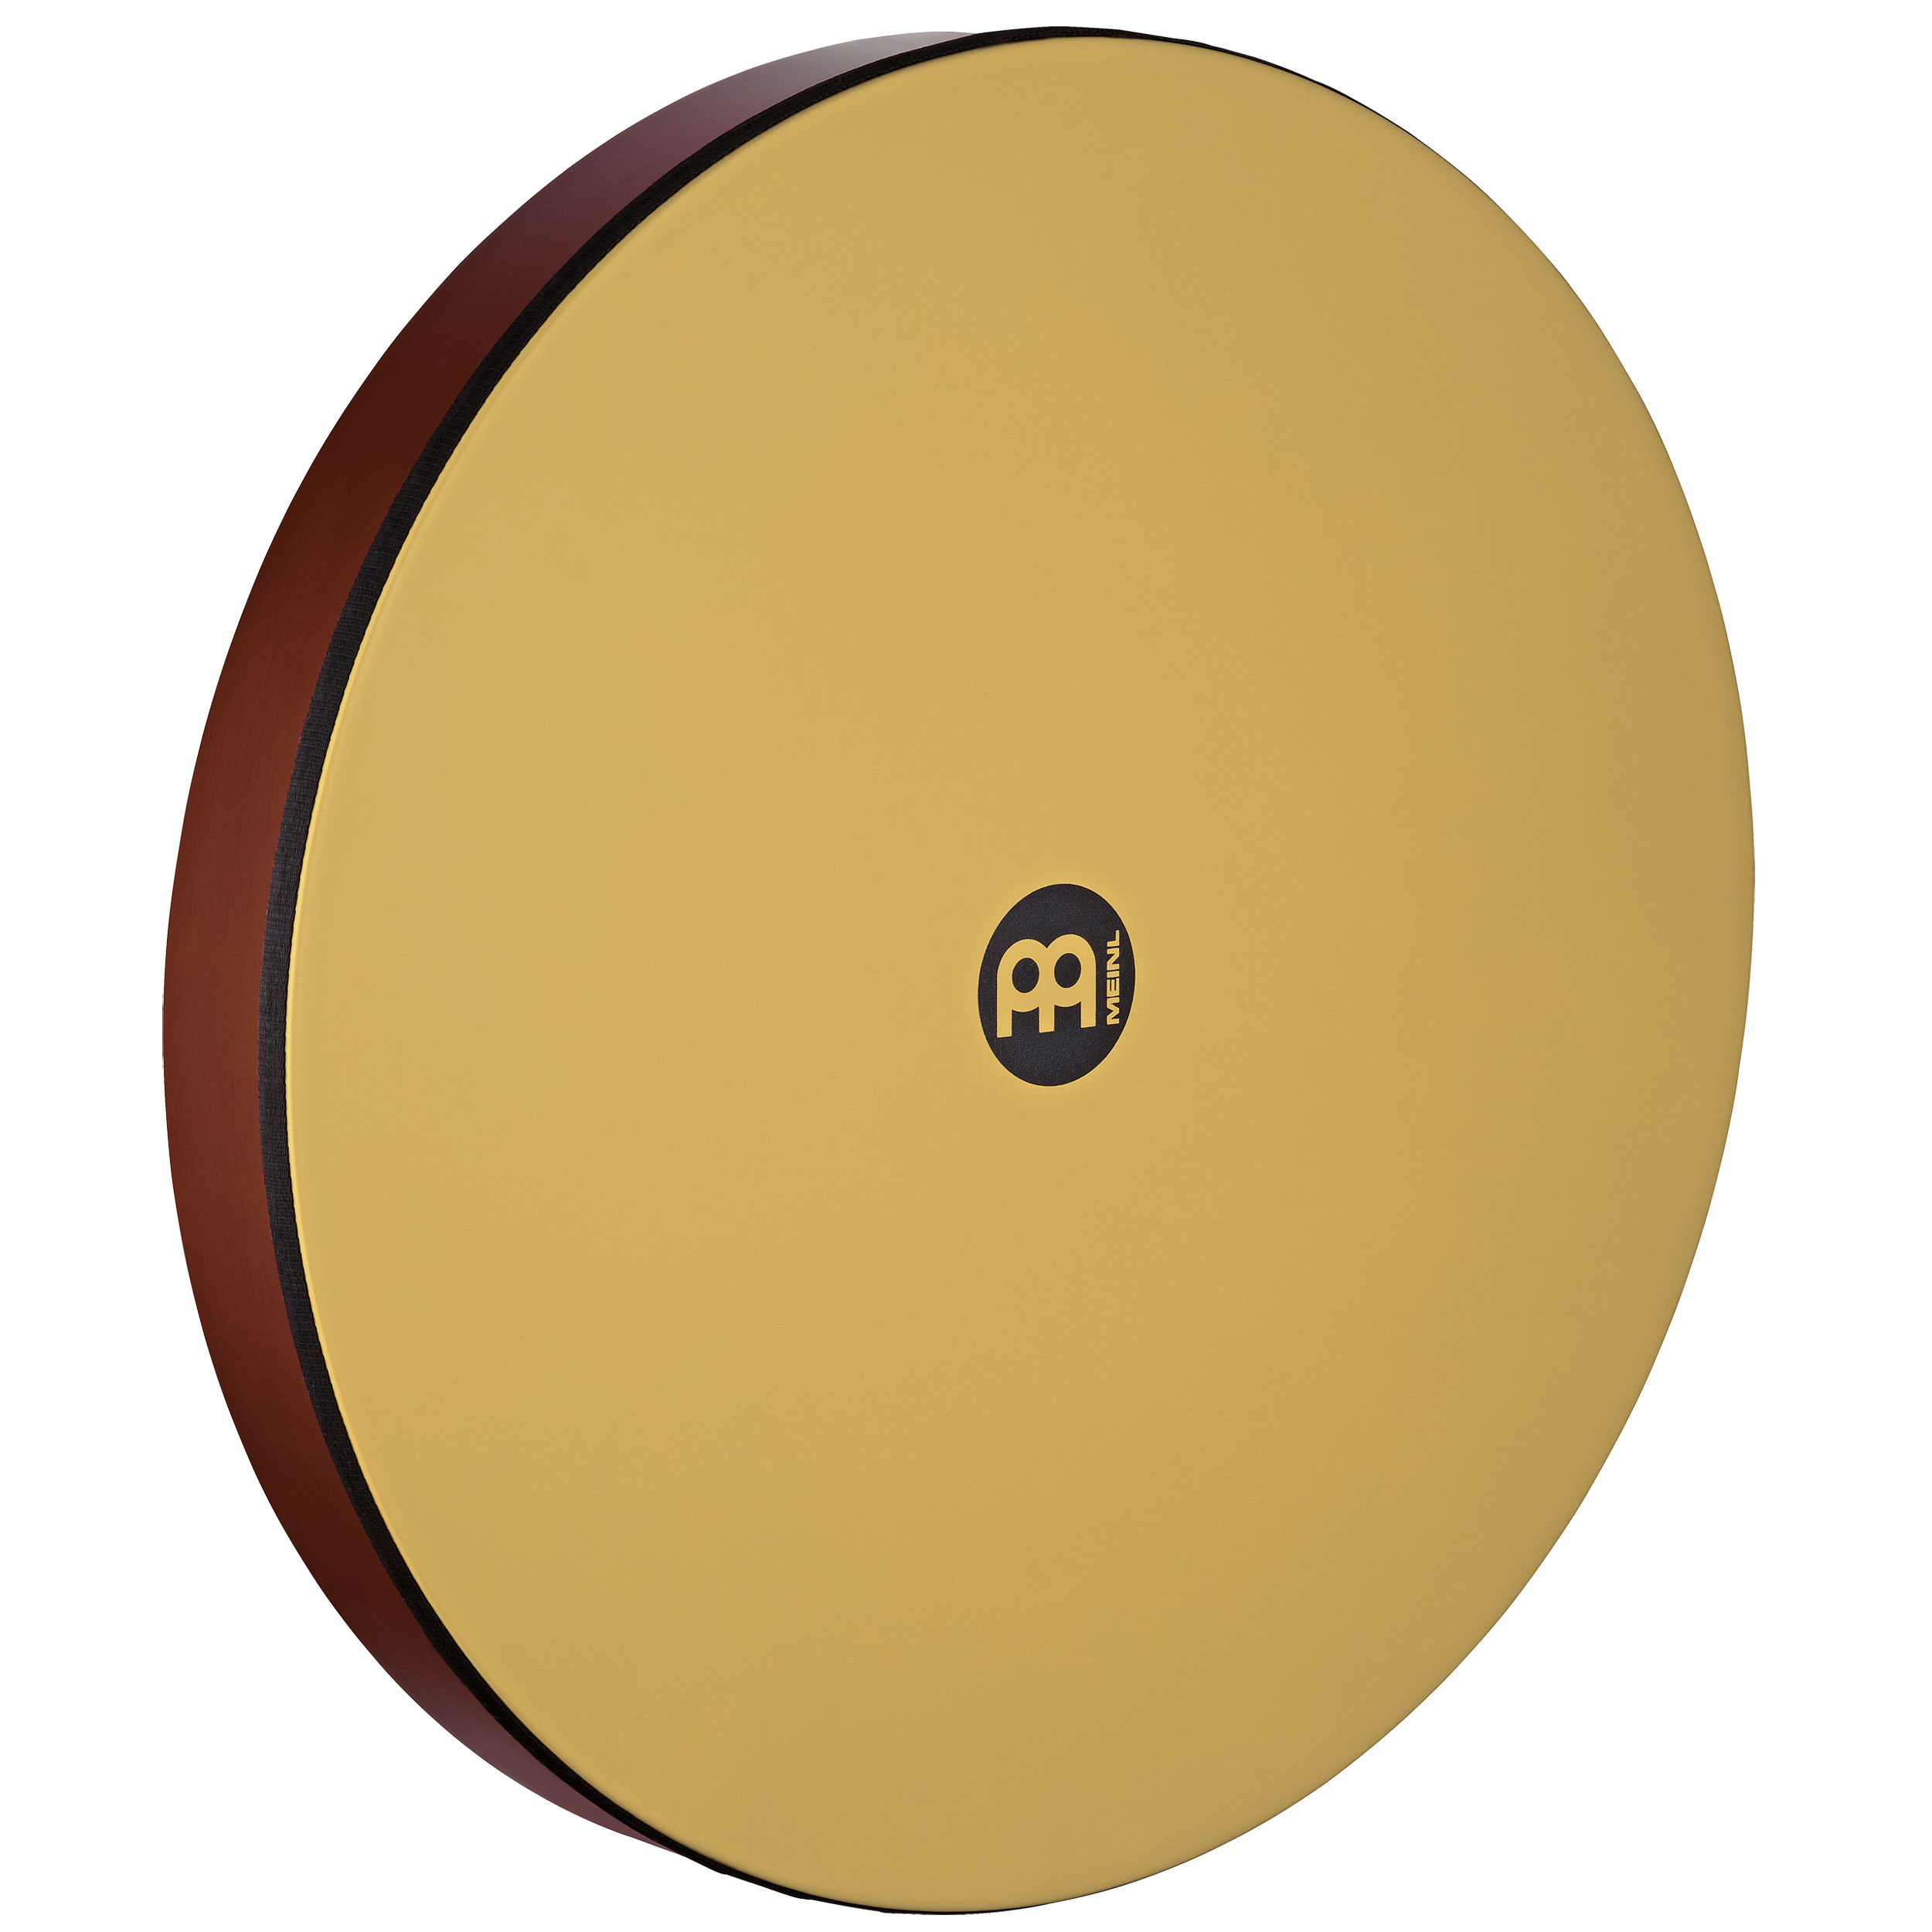 """Meinl 22"""" x 2.75"""" Hand Drum with Synthetic Head in African Brown Finish"""